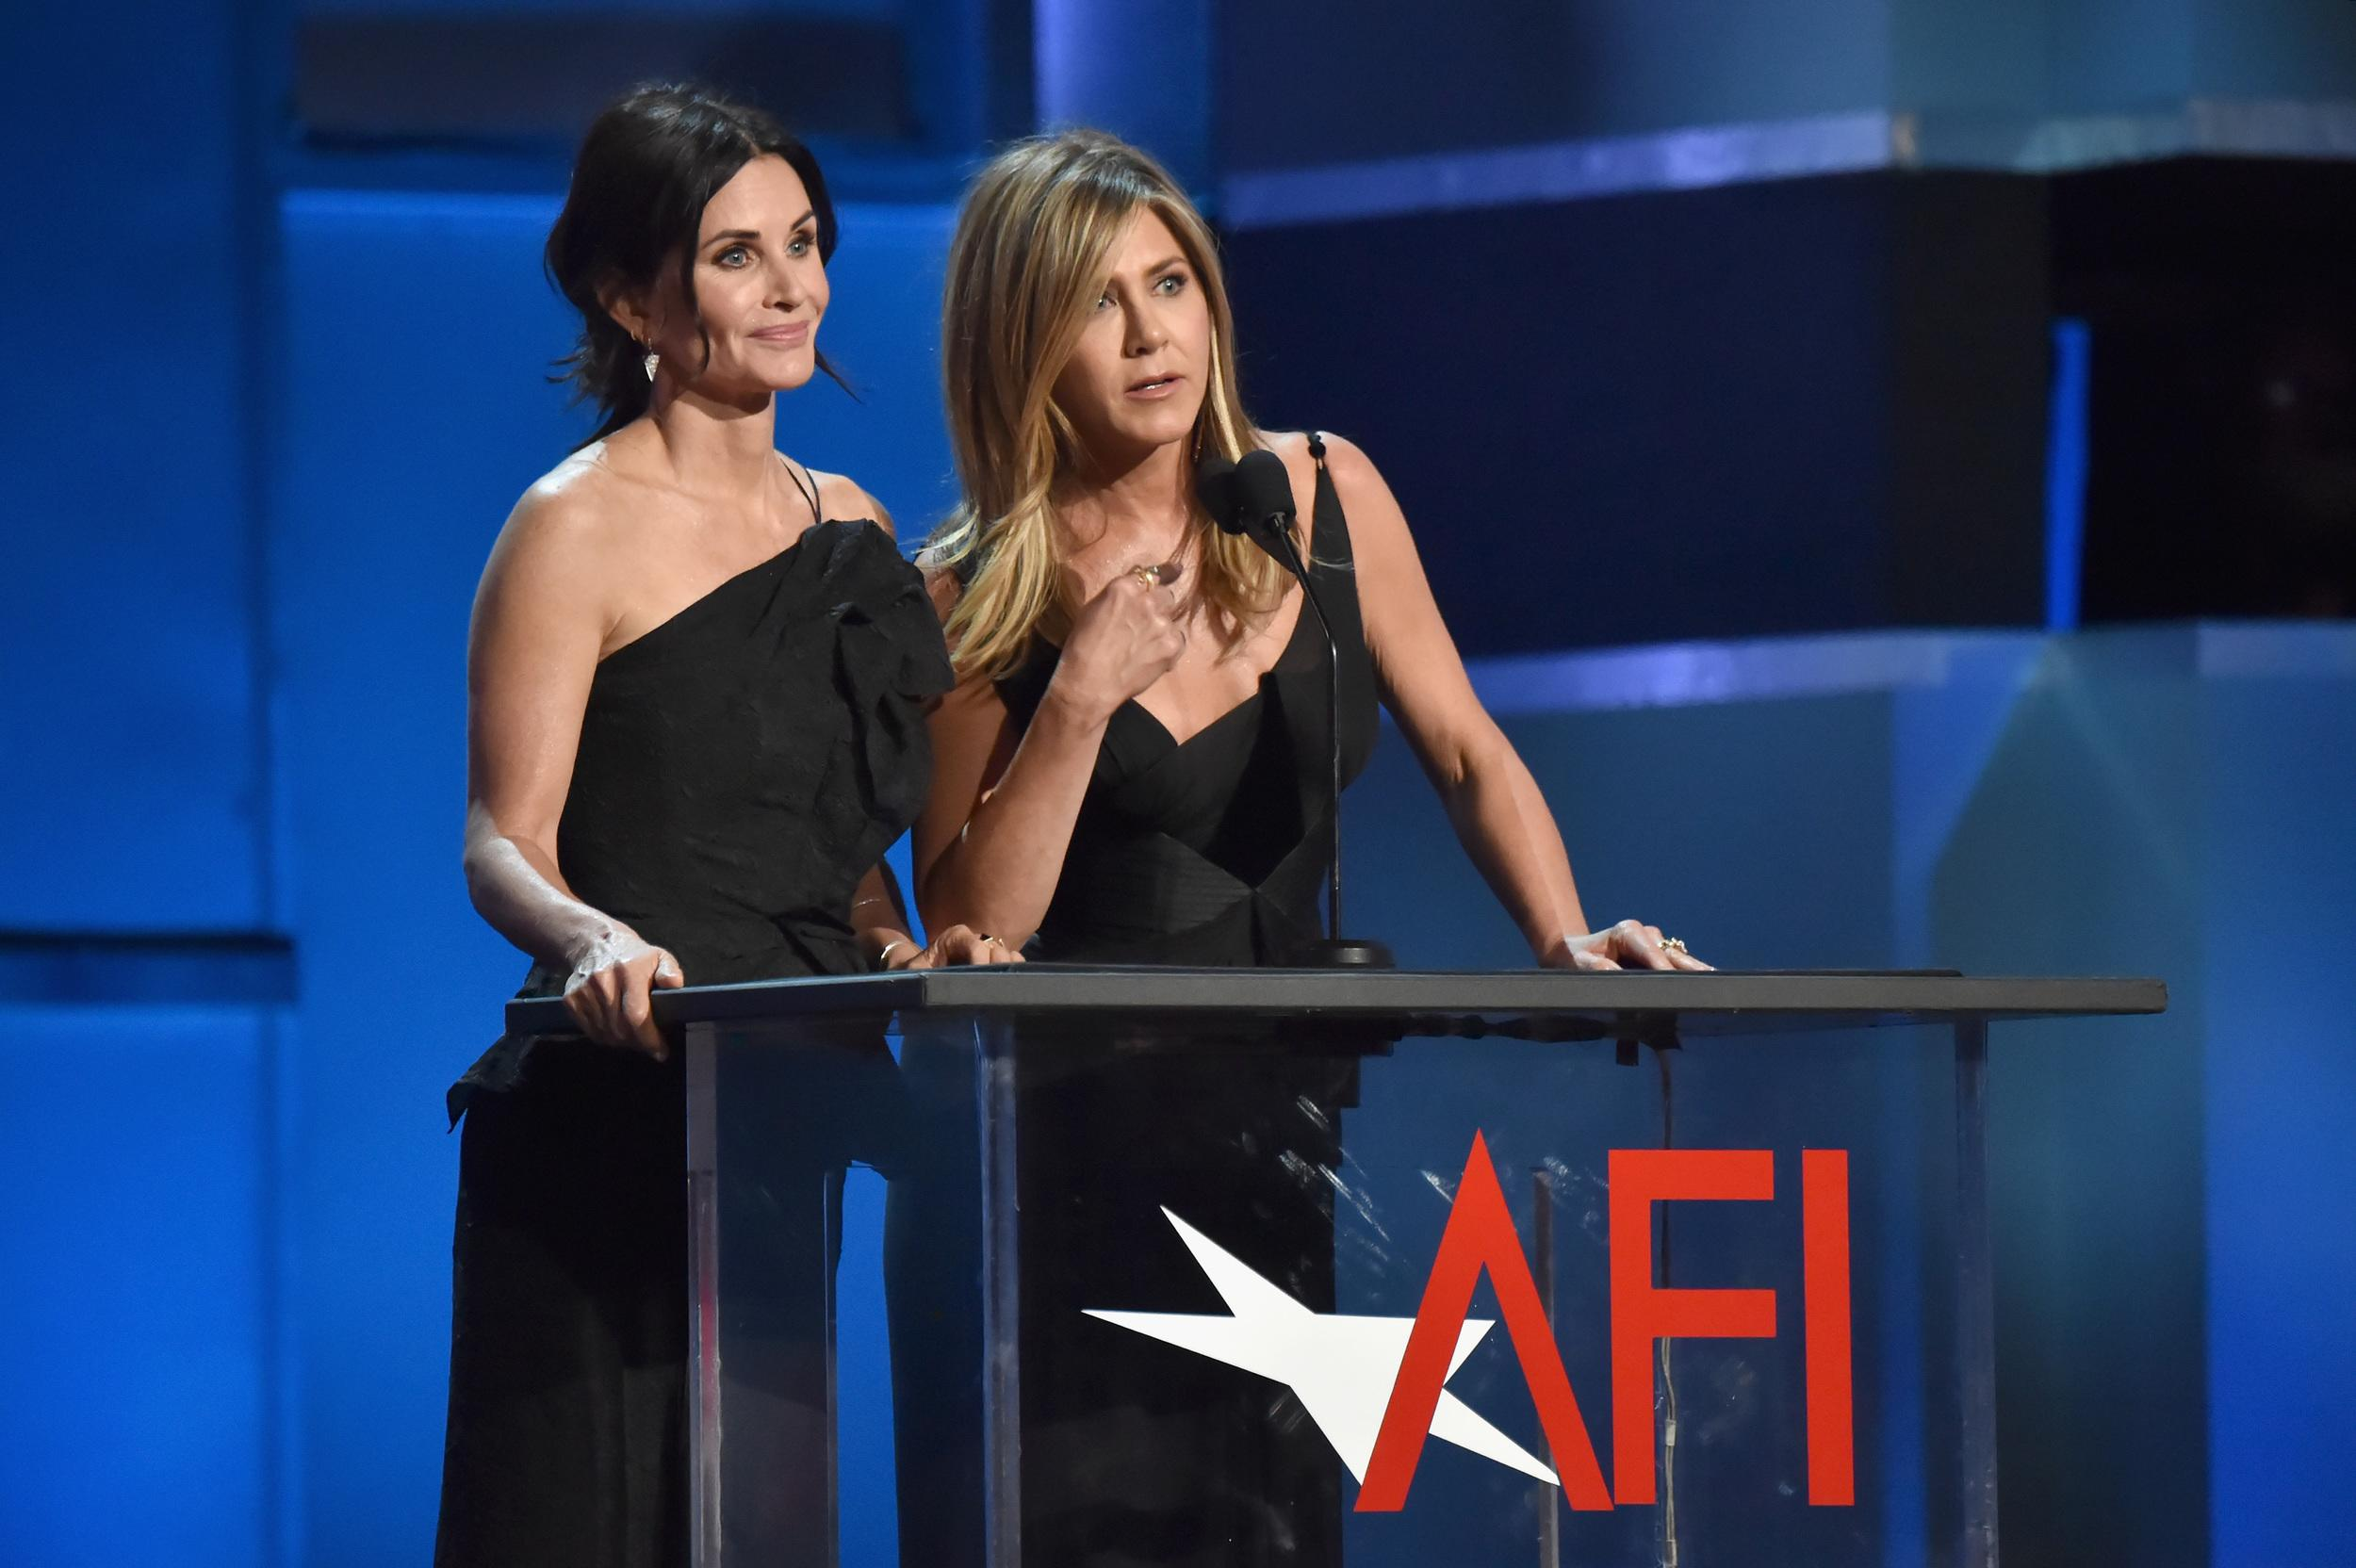 HOLLYWOOD, CA - JUNE 07:  Courteney Cox (L) and Jennifer Aniston speak onstage during the American Film Institute's 46th Life Achievement Award Gala Tribute to George Clooney at Dolby Theatre  on June 7, 2018 in Hollywood, California.  288523  (Photo by Kevin Mazur/Getty Images for Turner)